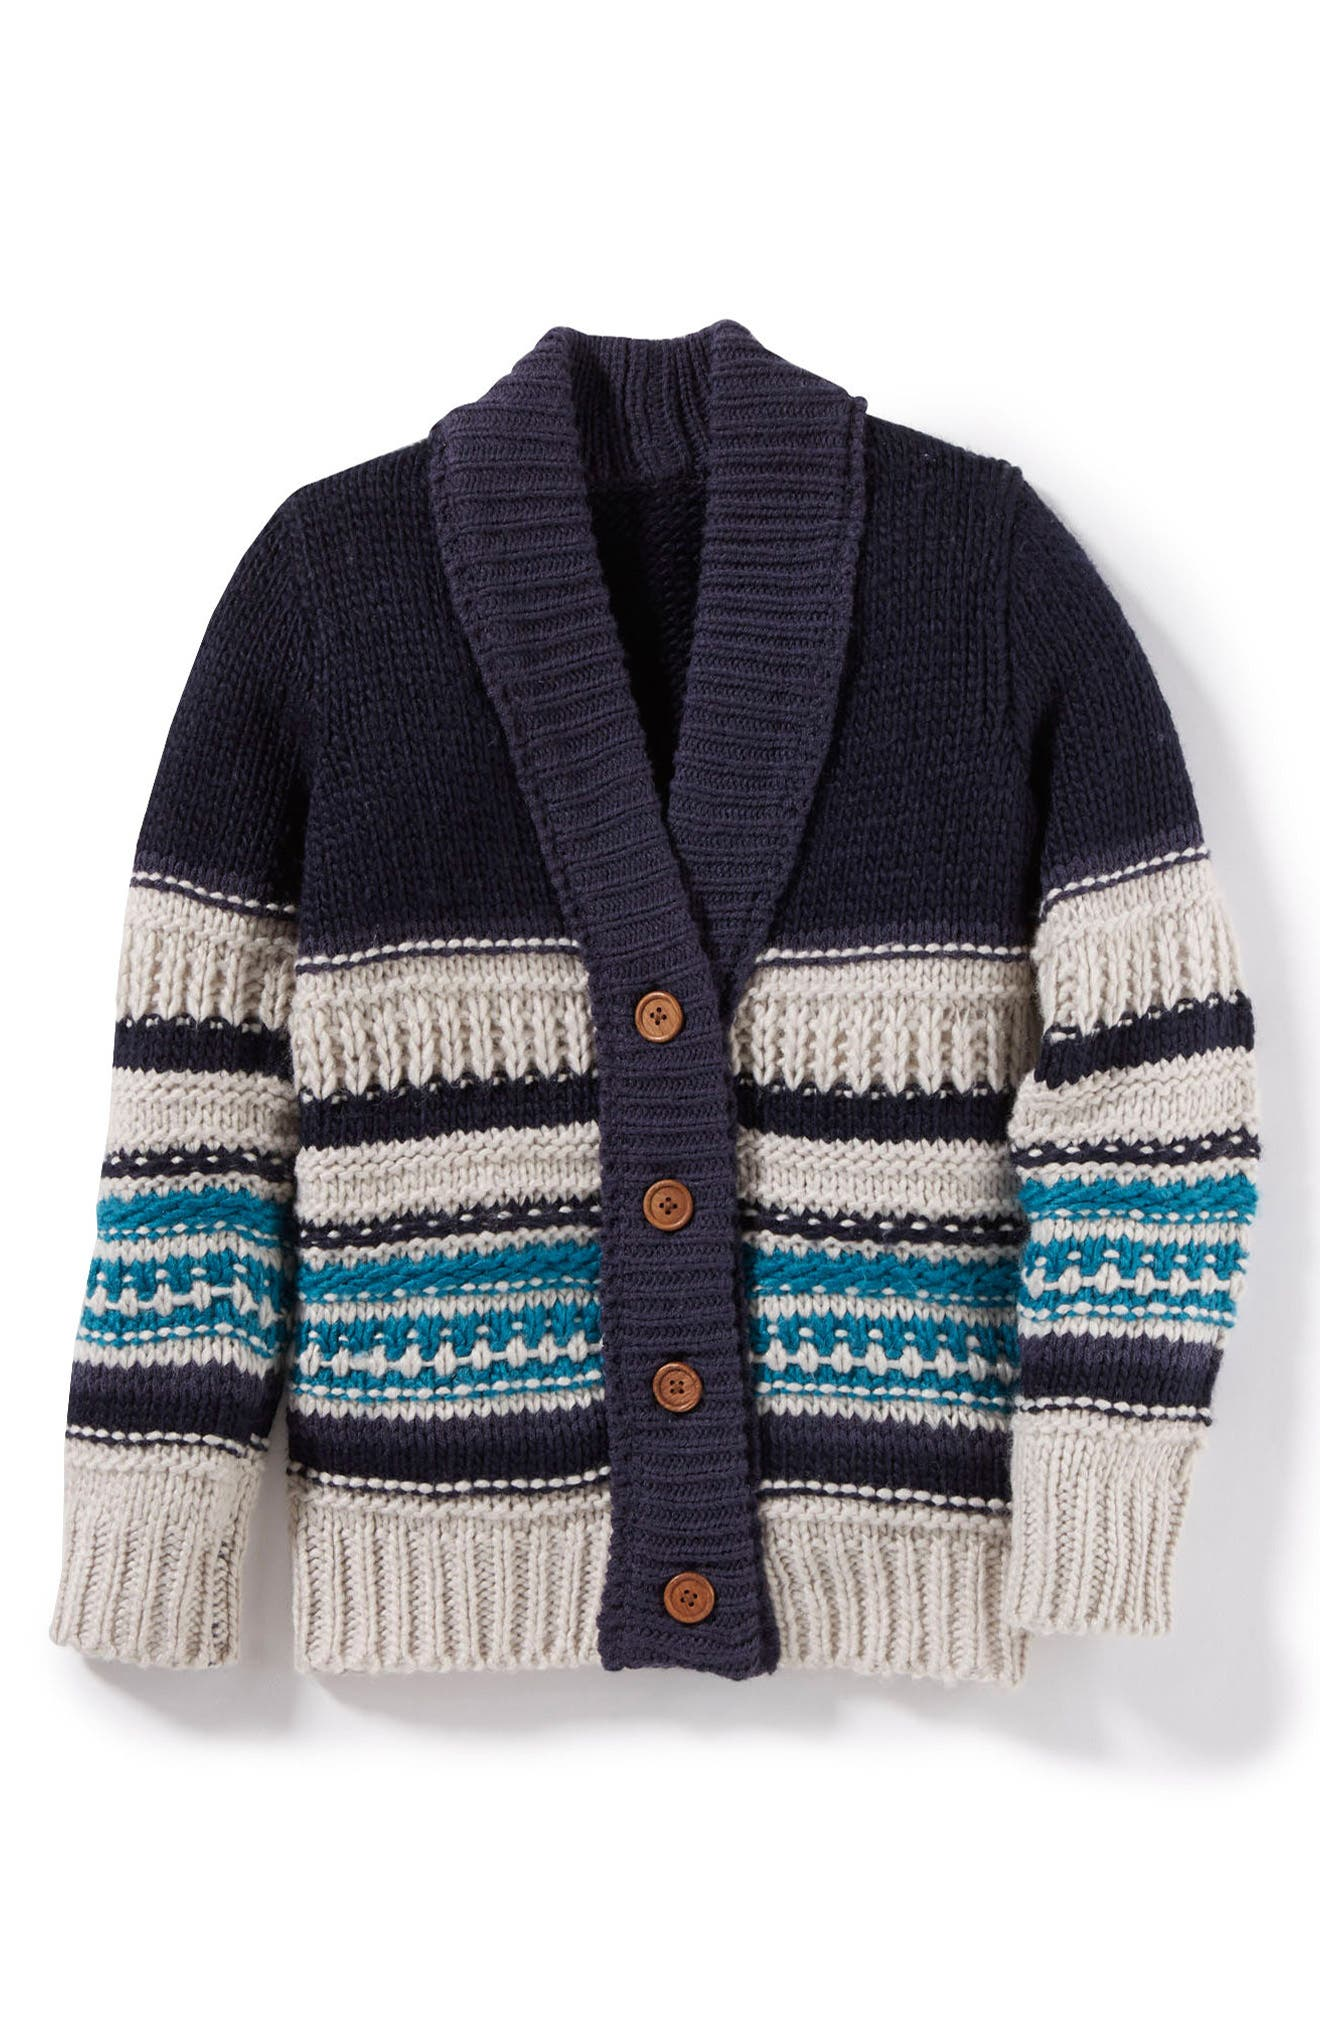 Peek Ollie Striped Cardigan Sweater (Toddler Boys, Little Boys & Big Boys)